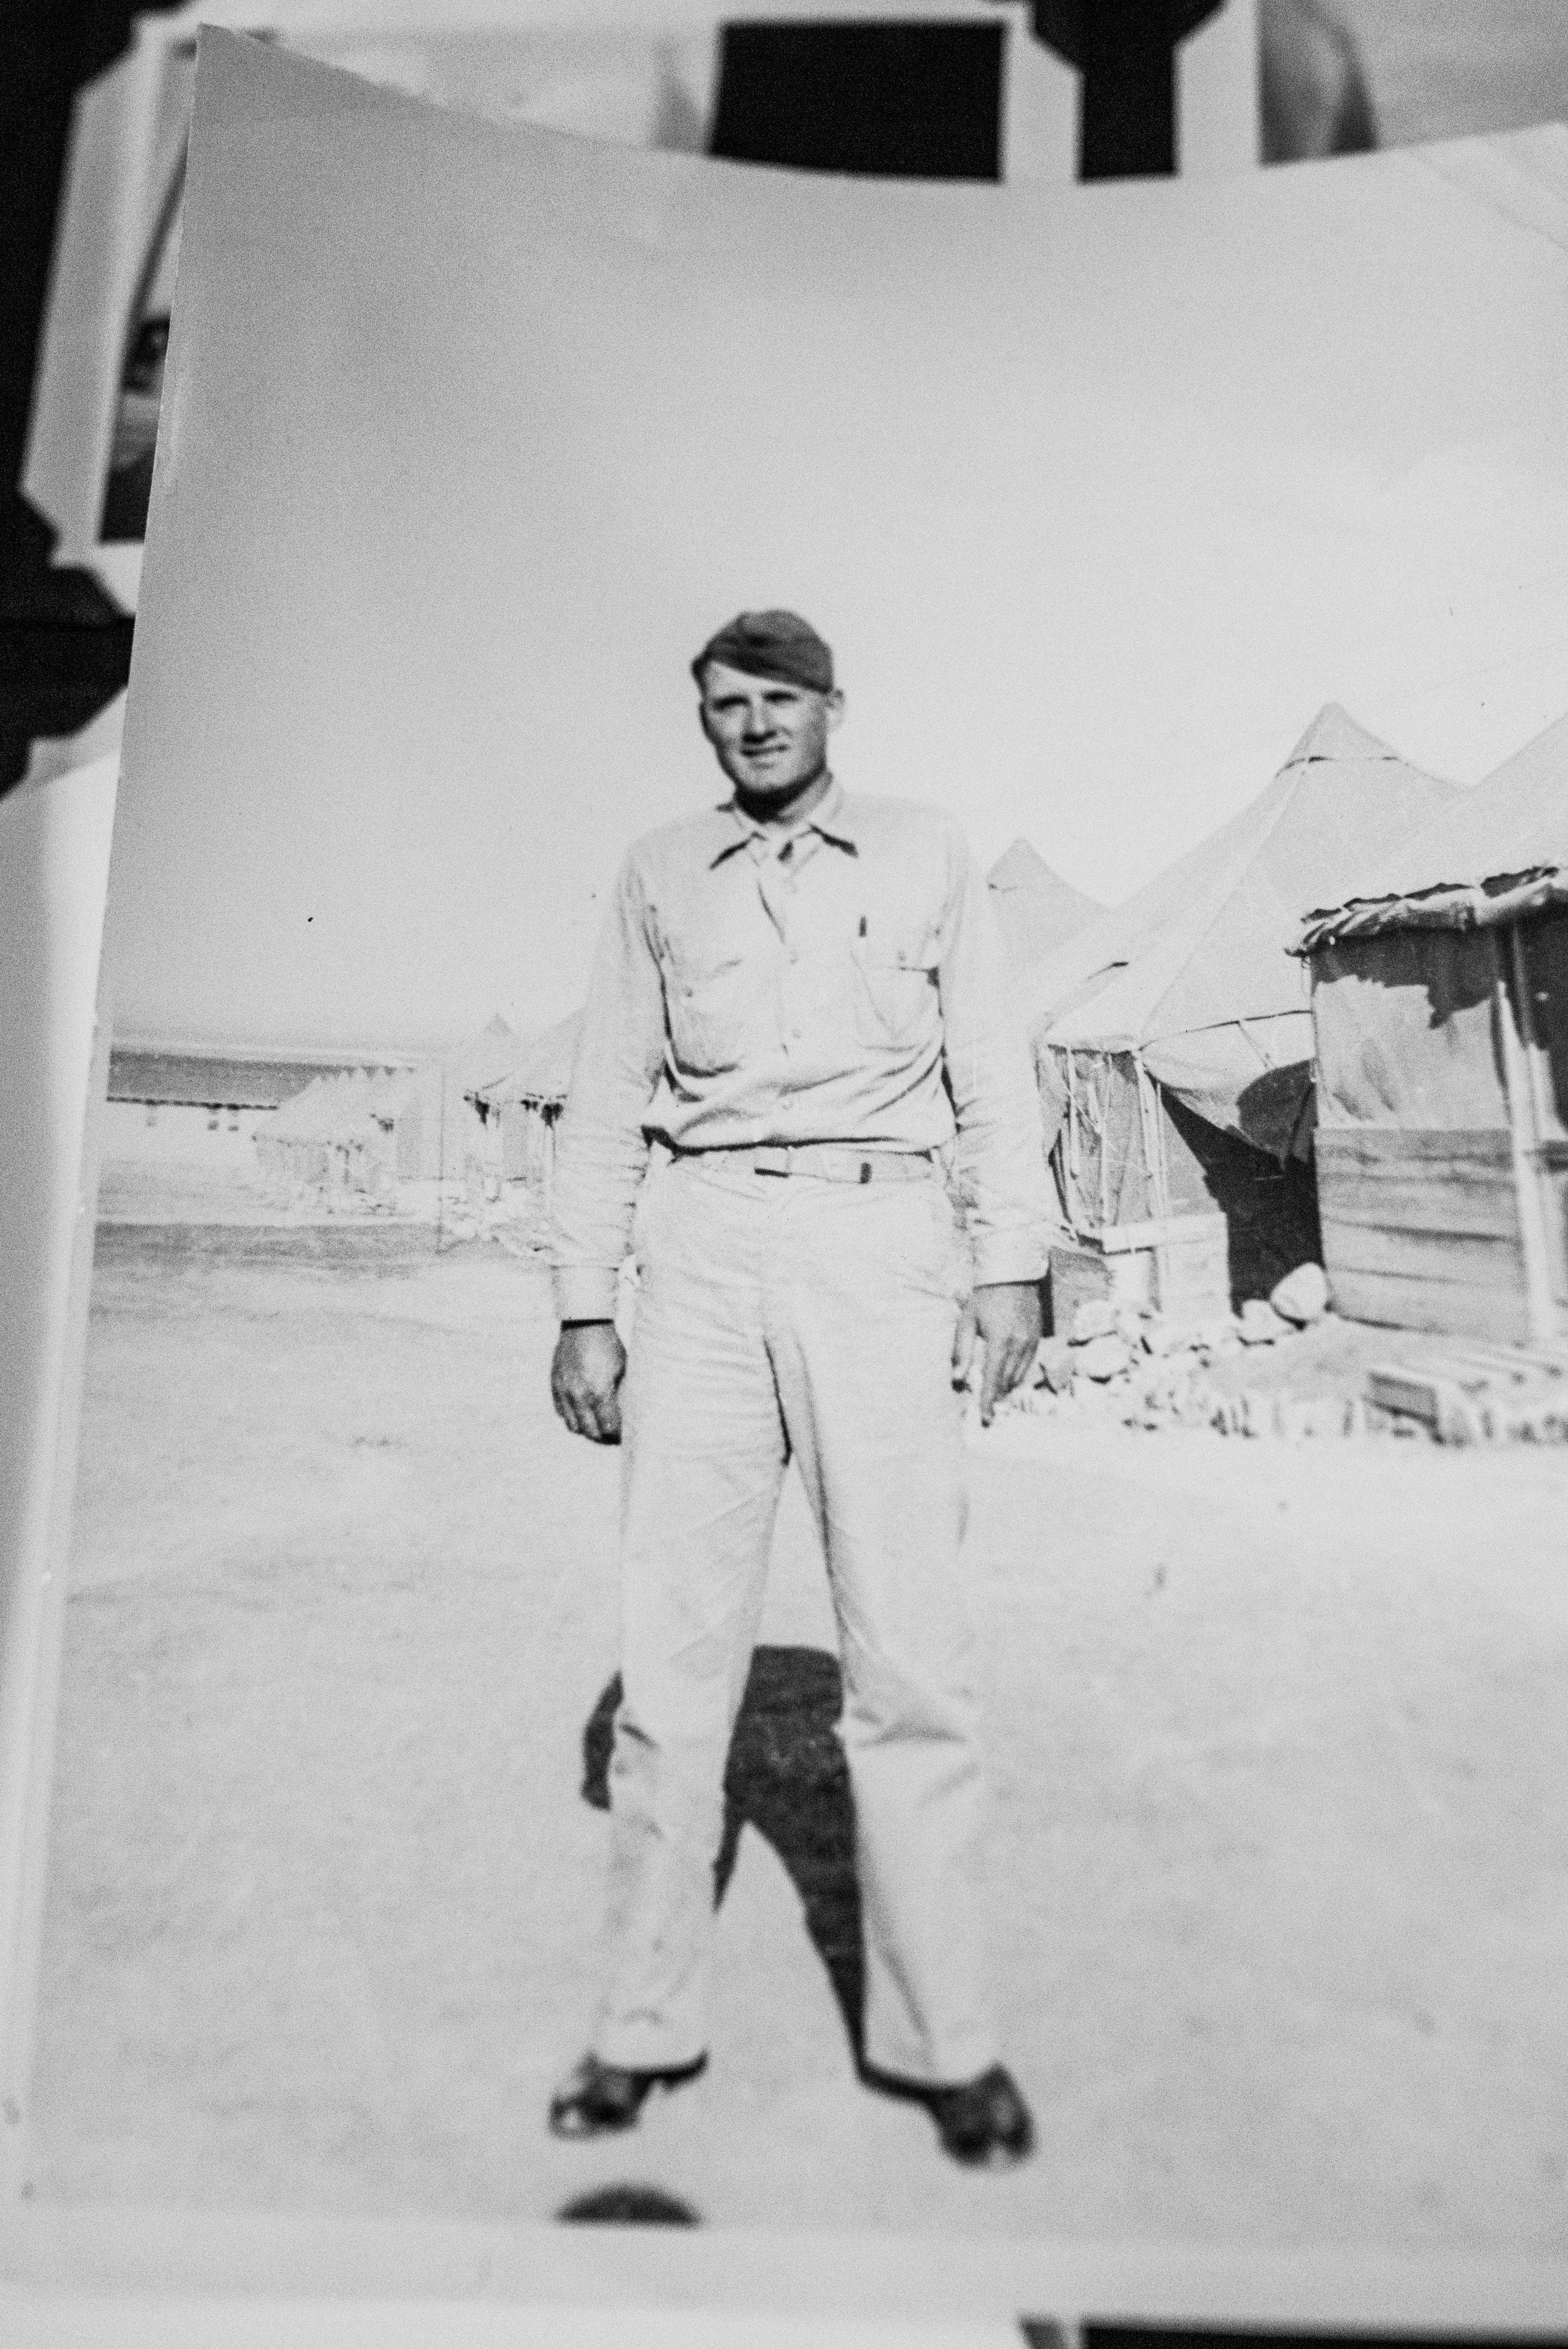 Alfred at Ft. Bliss in 1941, shortly before he left for the Philippines.